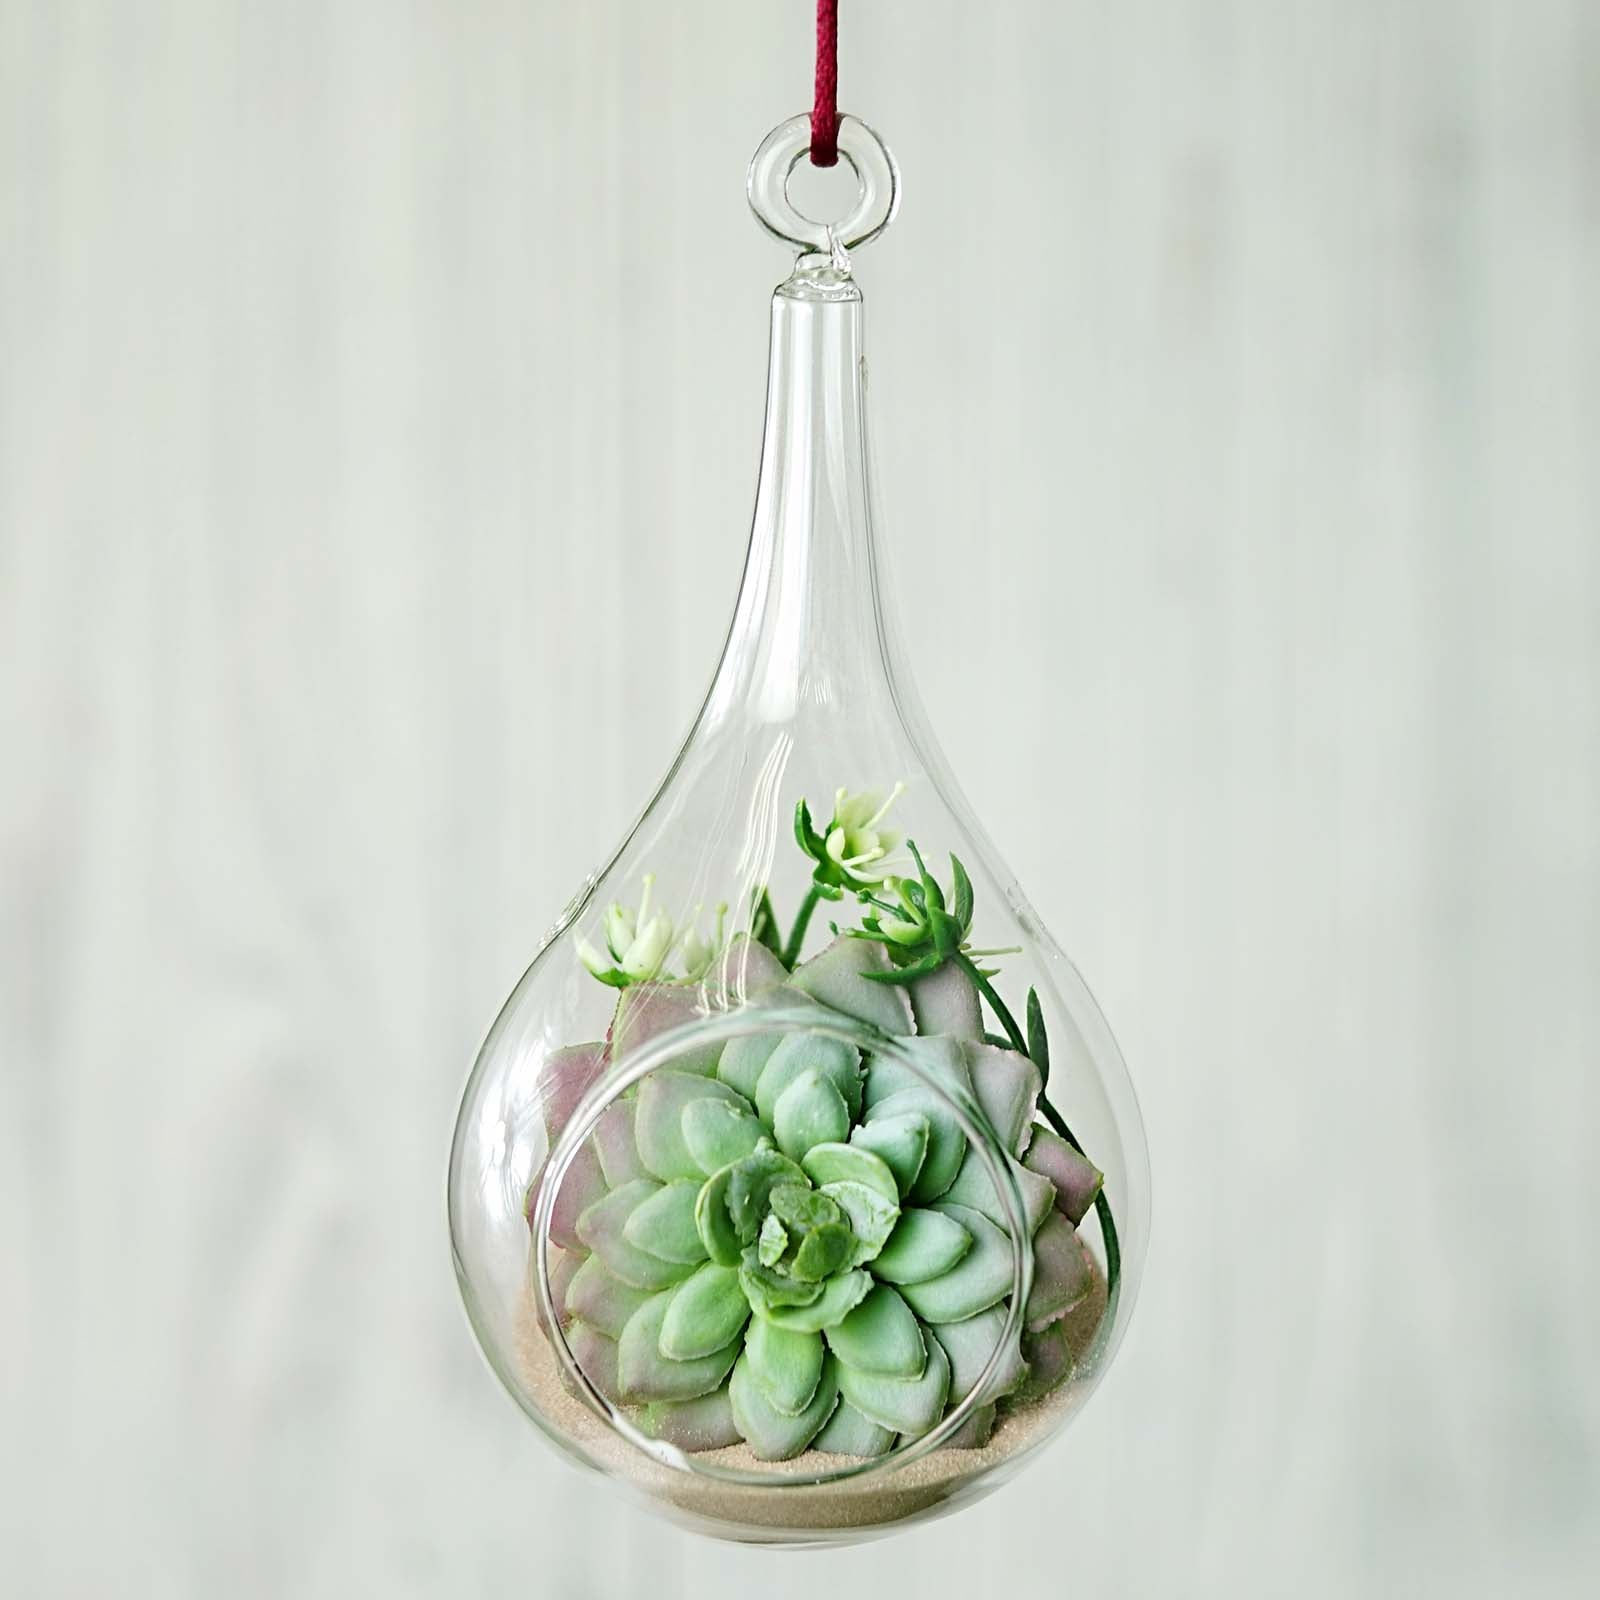 Set Of 6 6 Air Plant Glass Artificial Terrariums Plants Free Falling Teardrop Hanging Plant Holders Tableclothsfactory